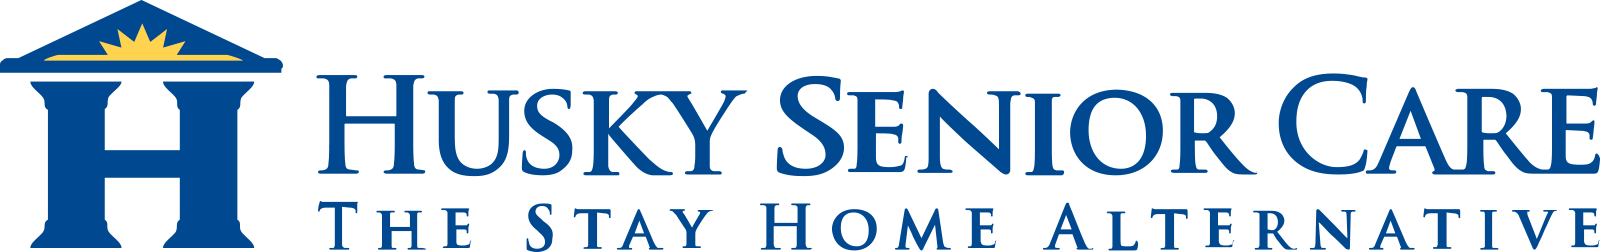 Husky Senior Care Logo